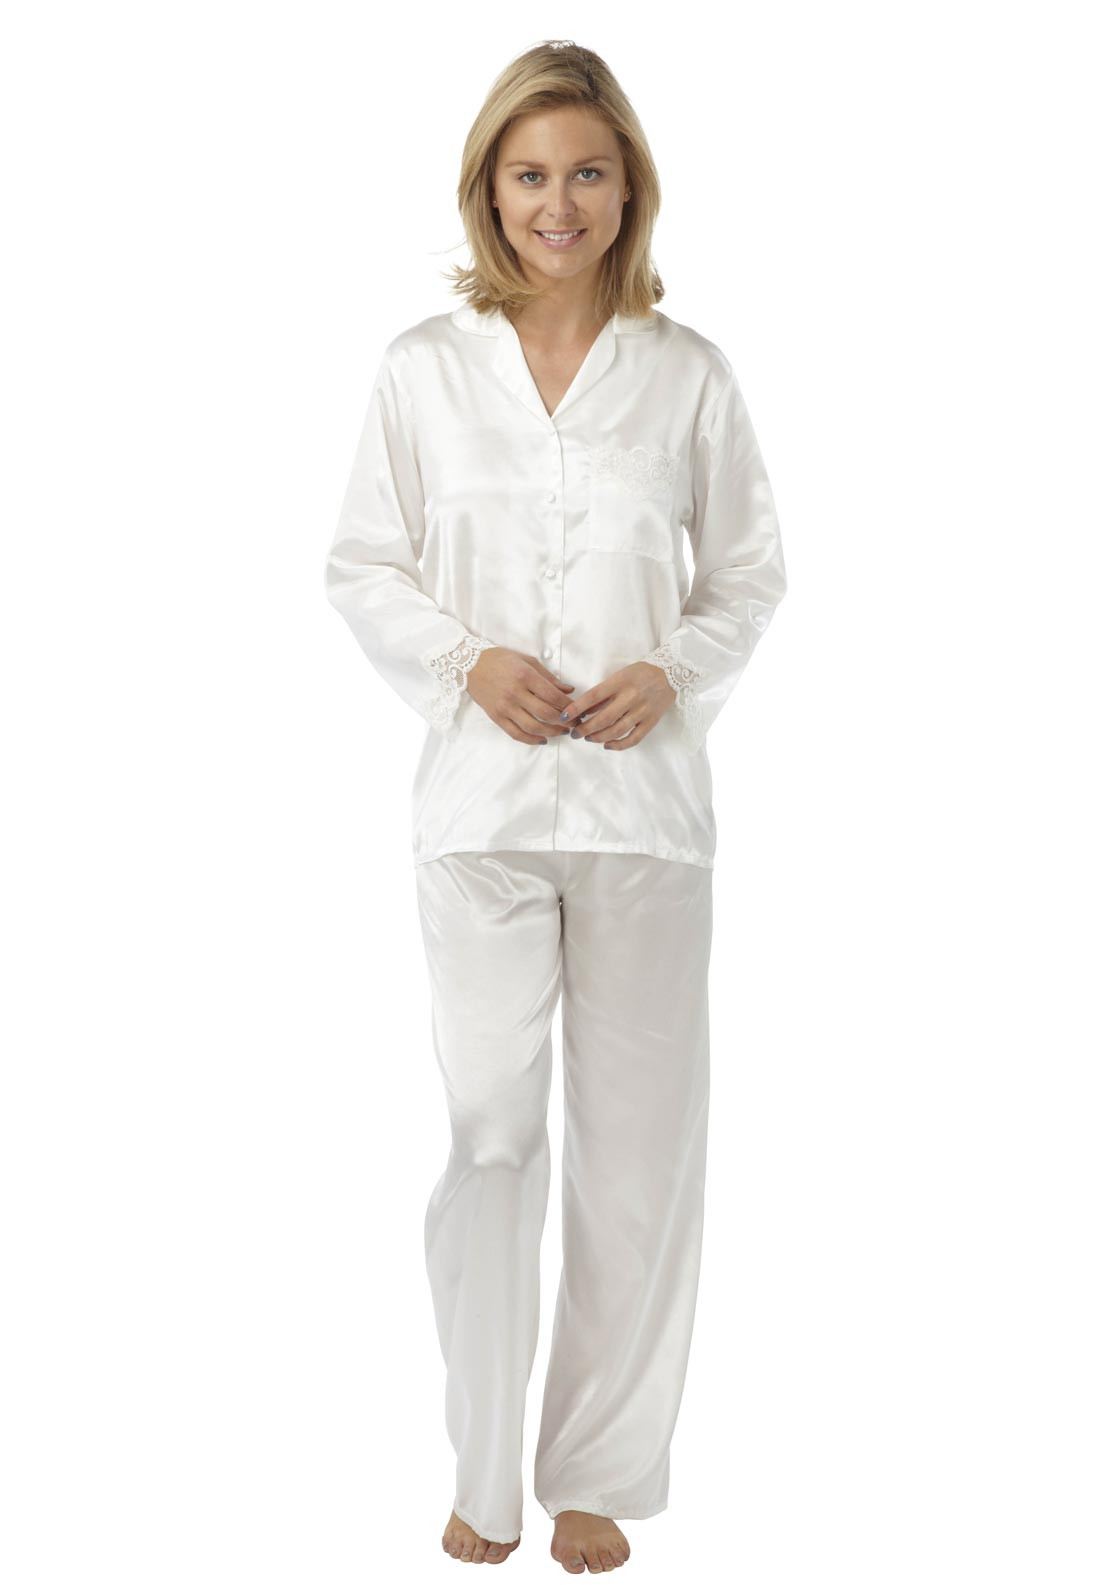 Indigo Sky Satin with Lace Trim Pyjamas, Ivory